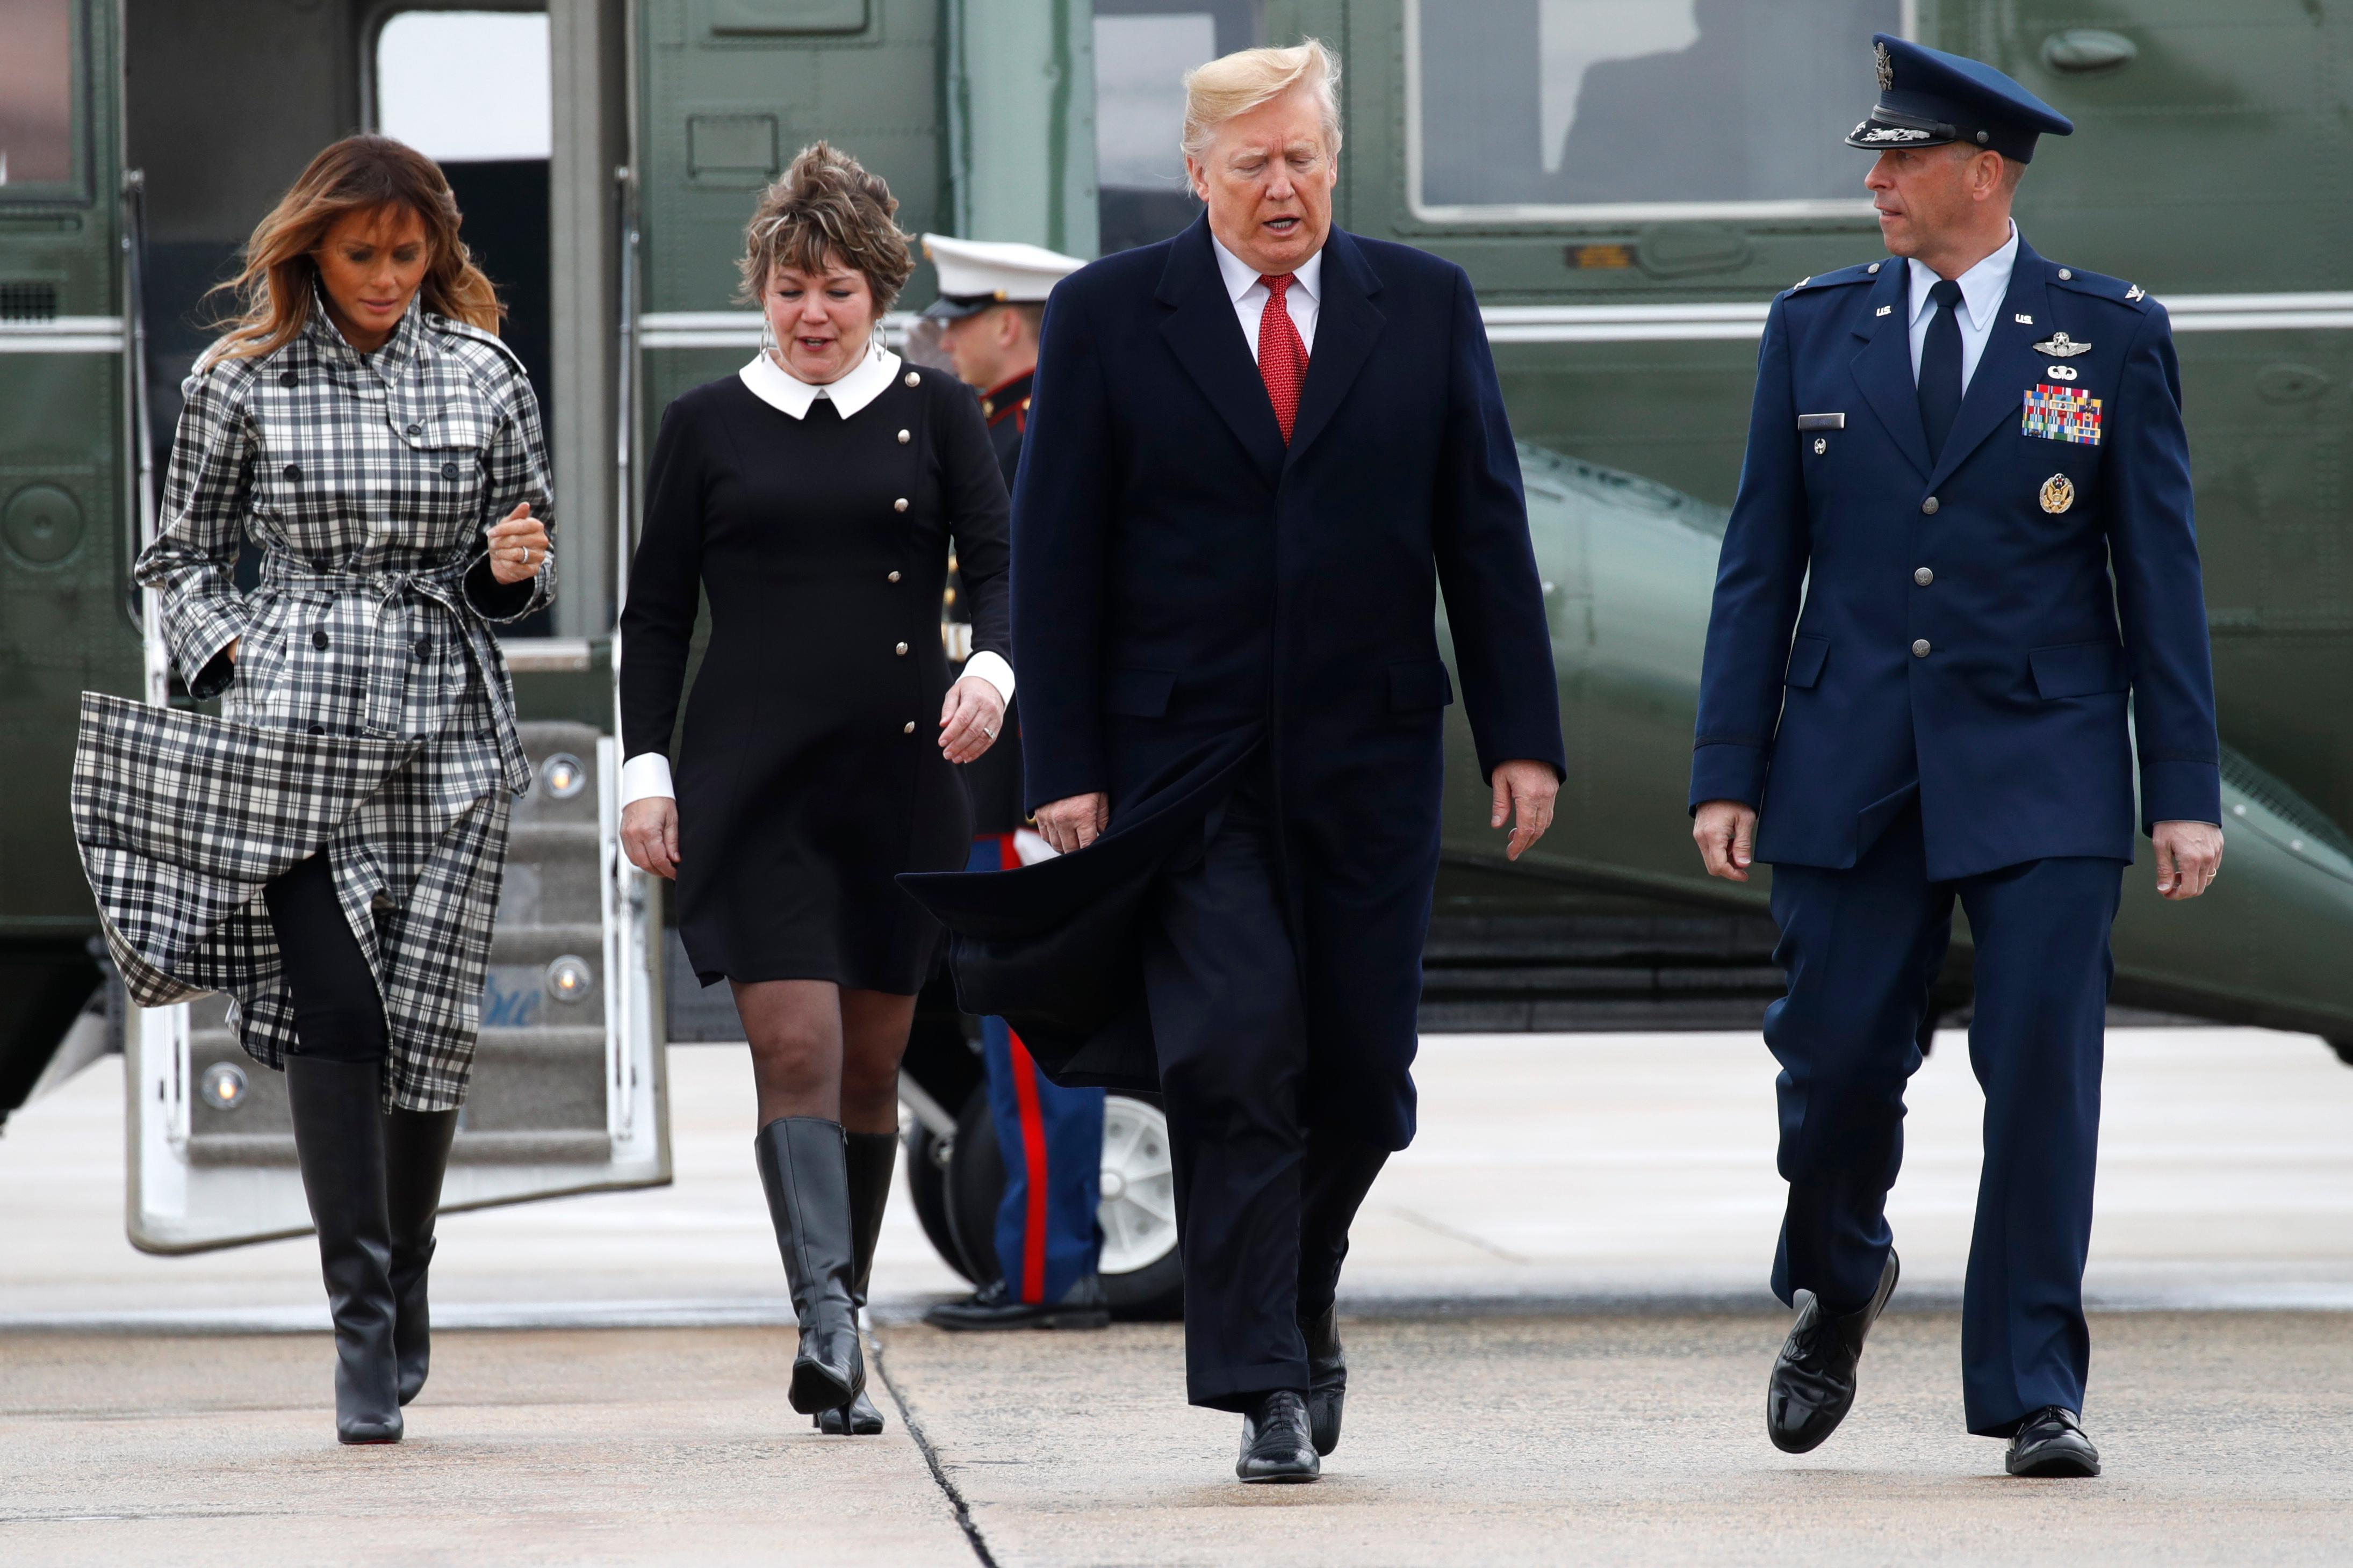 President Donald Trump and first lady Melania Trump walk to board Air Force One at Andrews Air Force Base, Md., en route to Paris, Friday Nov. 9, 2018, where they will participate in World War I commemorations. (AP Photo/Jacquelyn Martin)